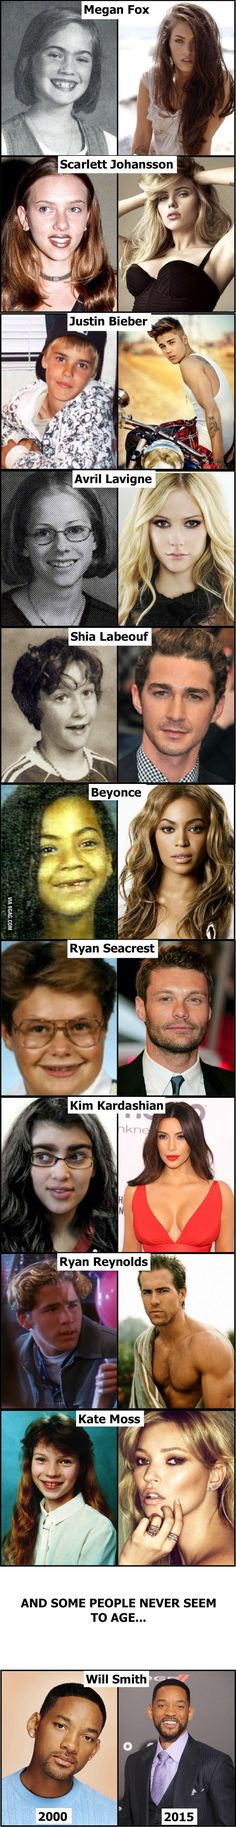 Celebrities then and now... (part 3)